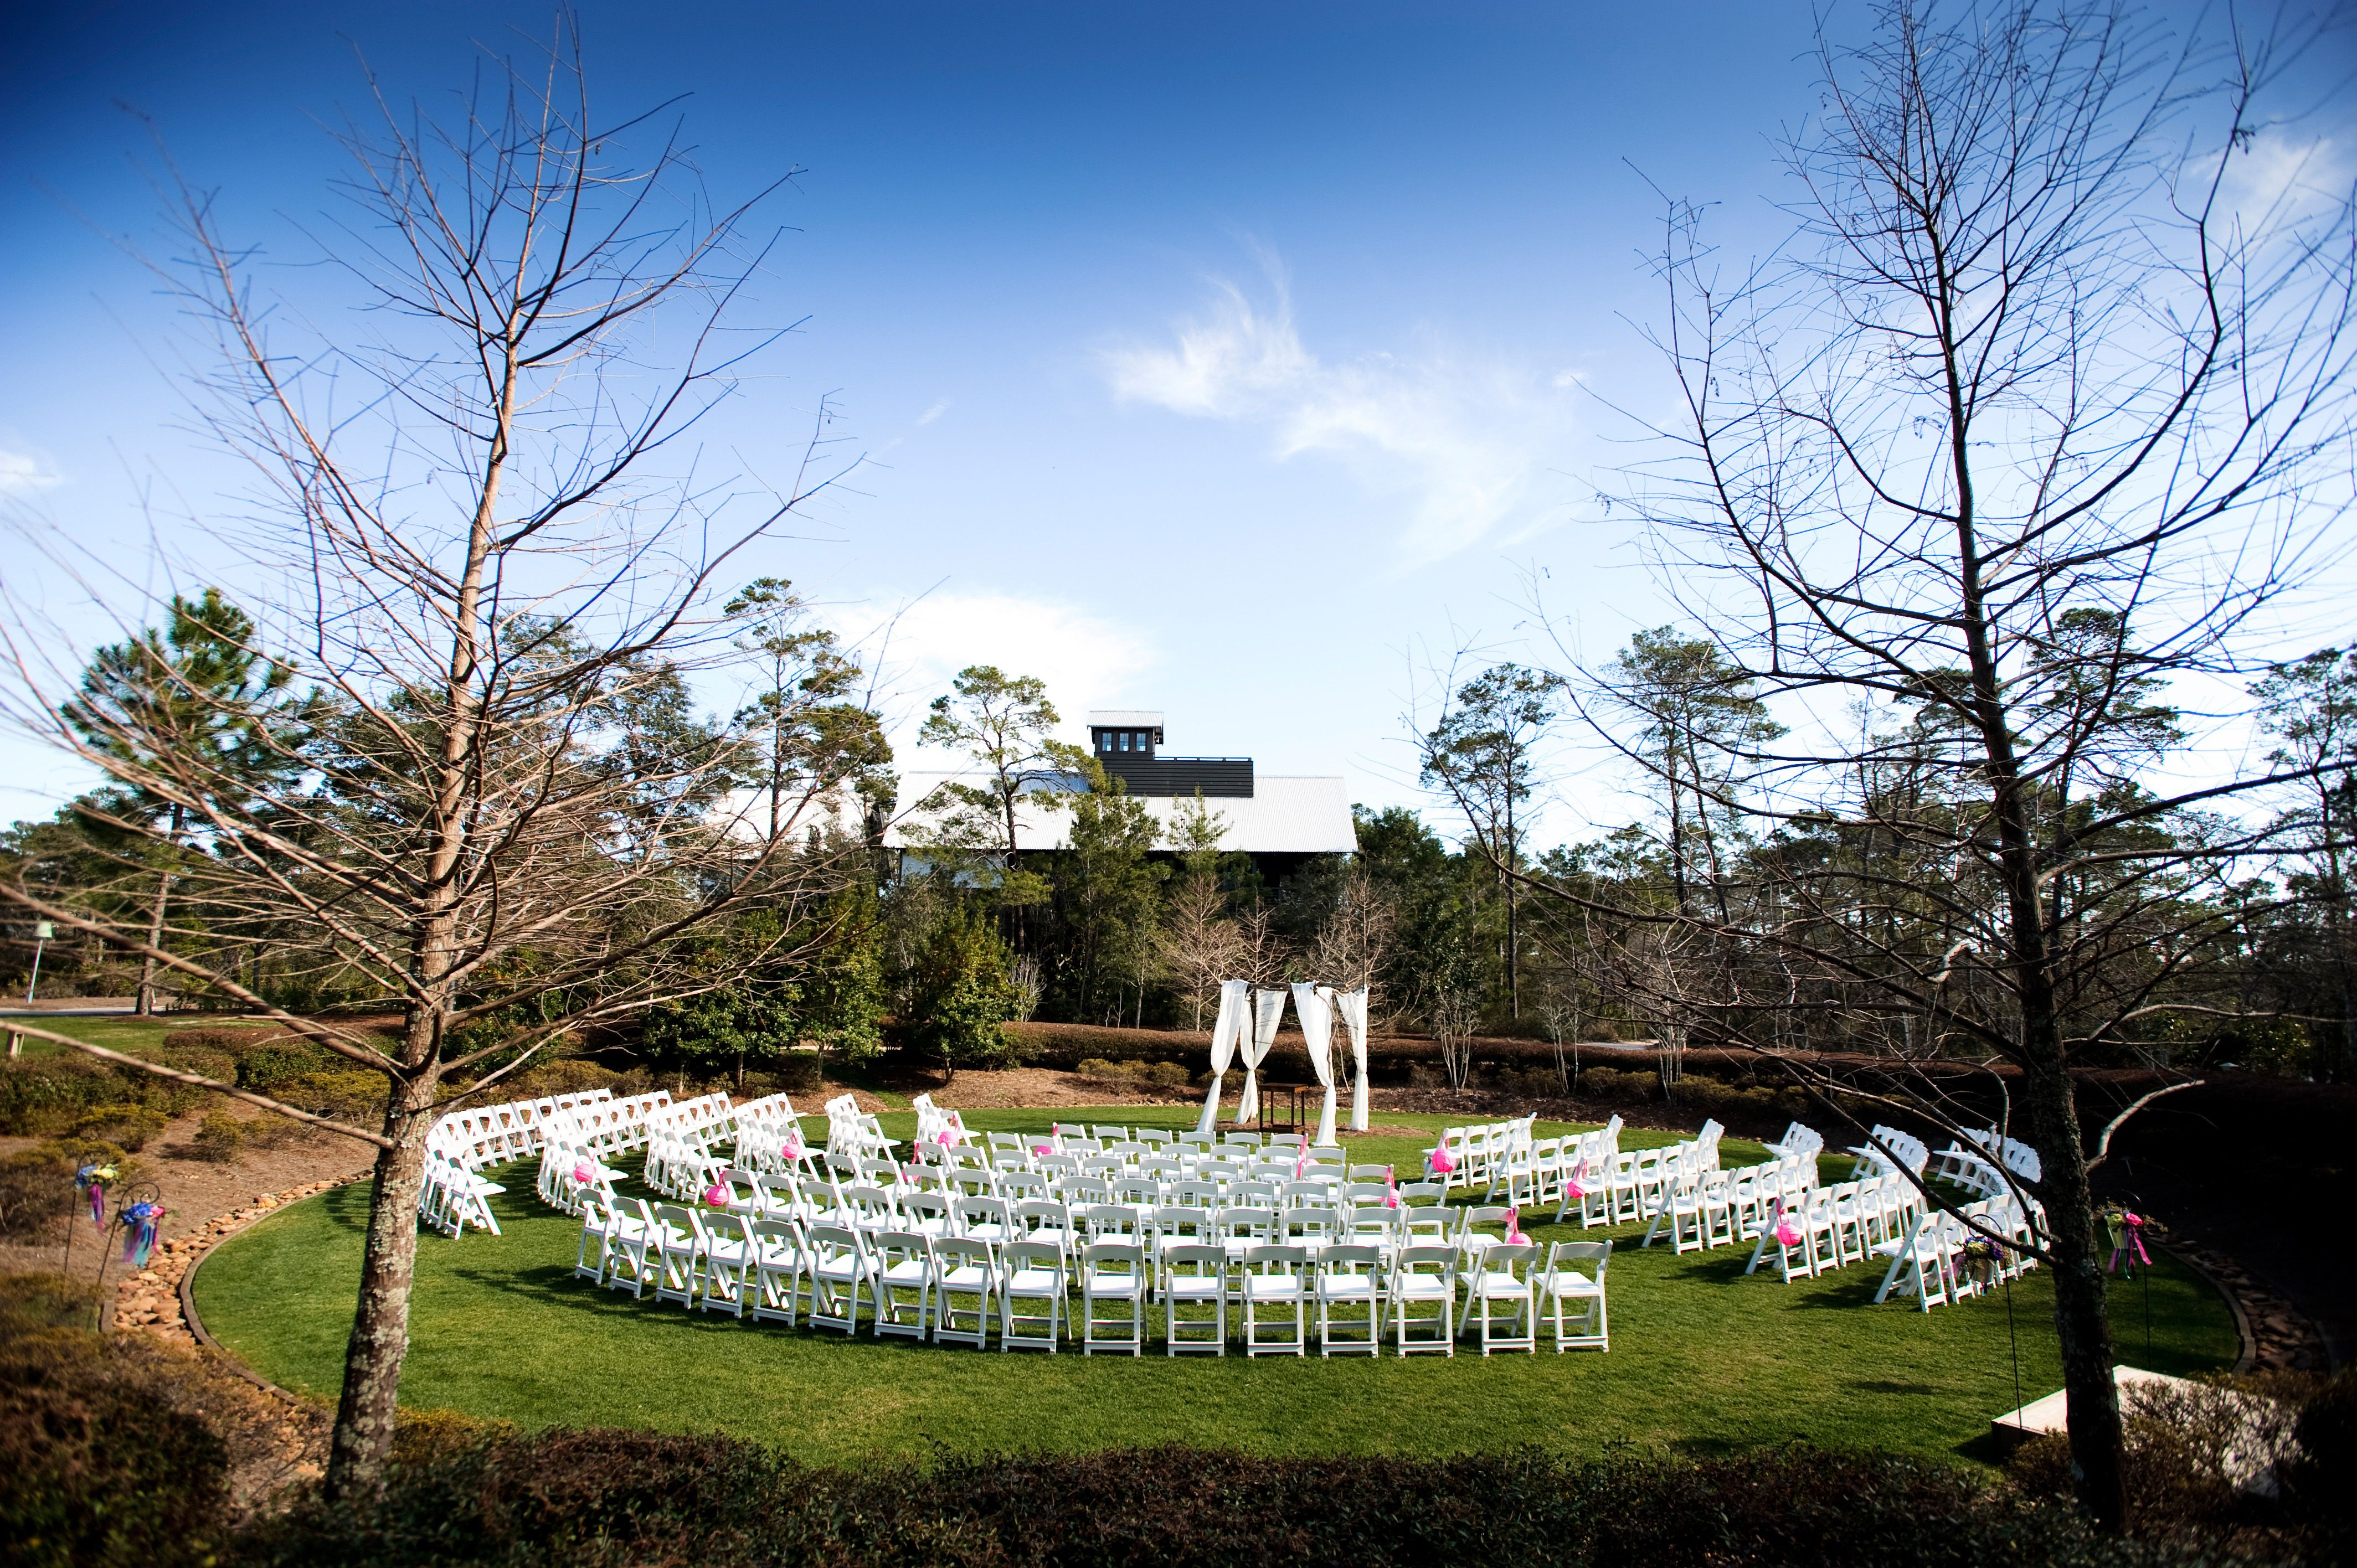 From Private Beach Ceremonies To Sophisticated Ballrooms Watercolor Inn Resort Wedding Venues Cater Every Possibility And Are A Short Drive